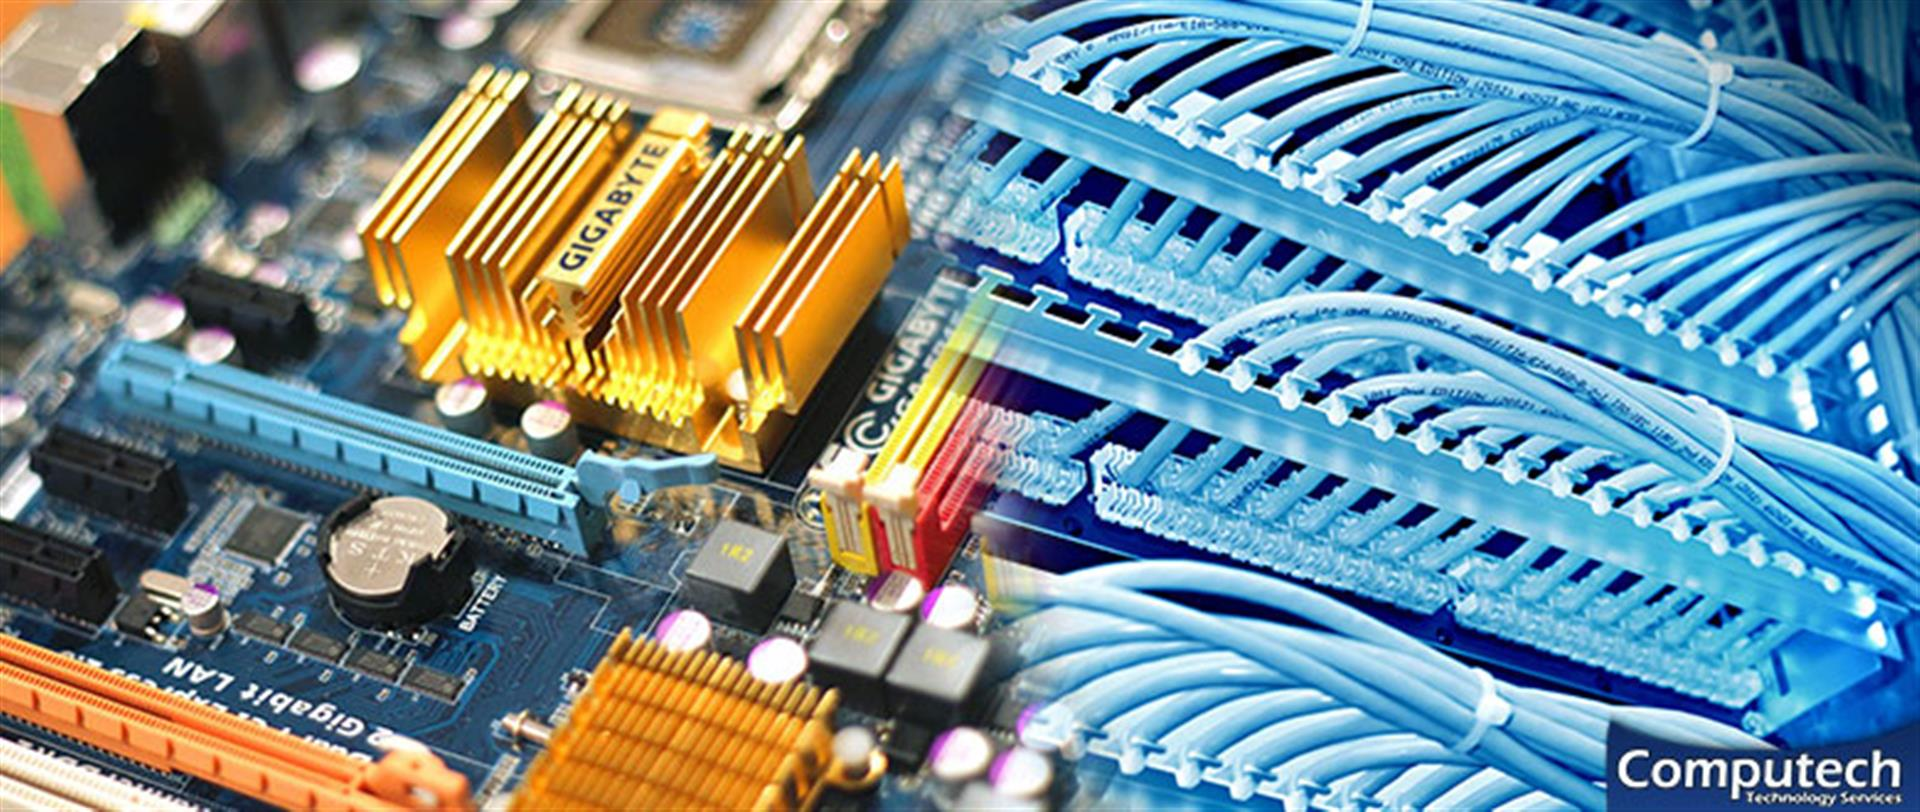 Pooler Georgia On Site Computer PC & Printer Repair, Networking, Voice & Data Cabling Solutions